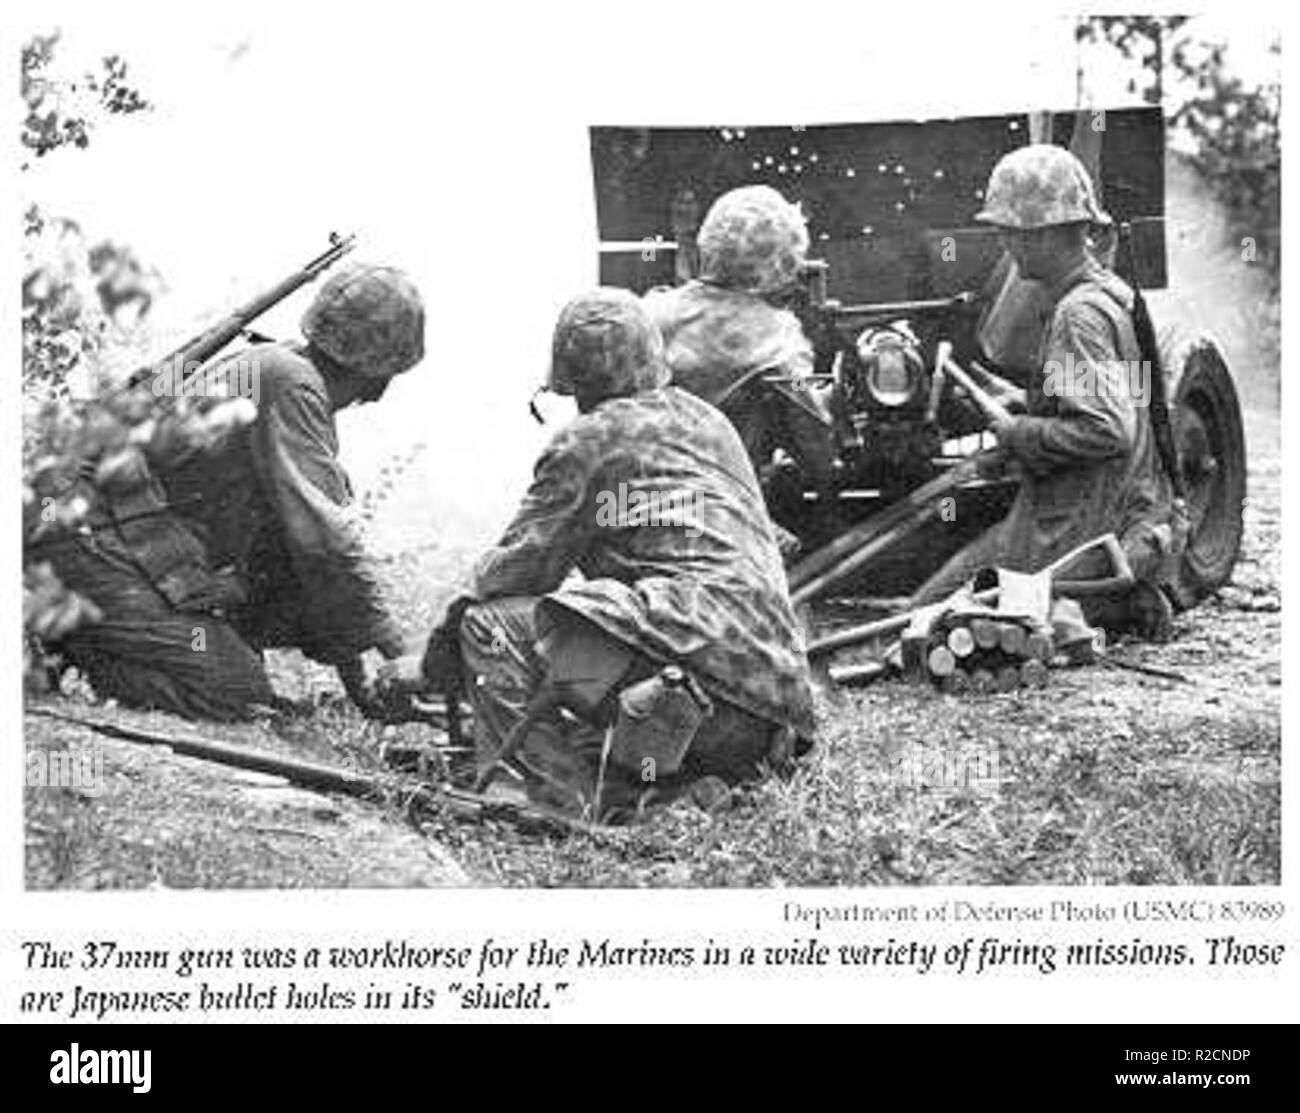 U.S. 37 mm gun crew in action, Saipan, 1944. From left to right are two ammunition carriers, gunner and assistant gunner. Note extended shield. Stock Photo